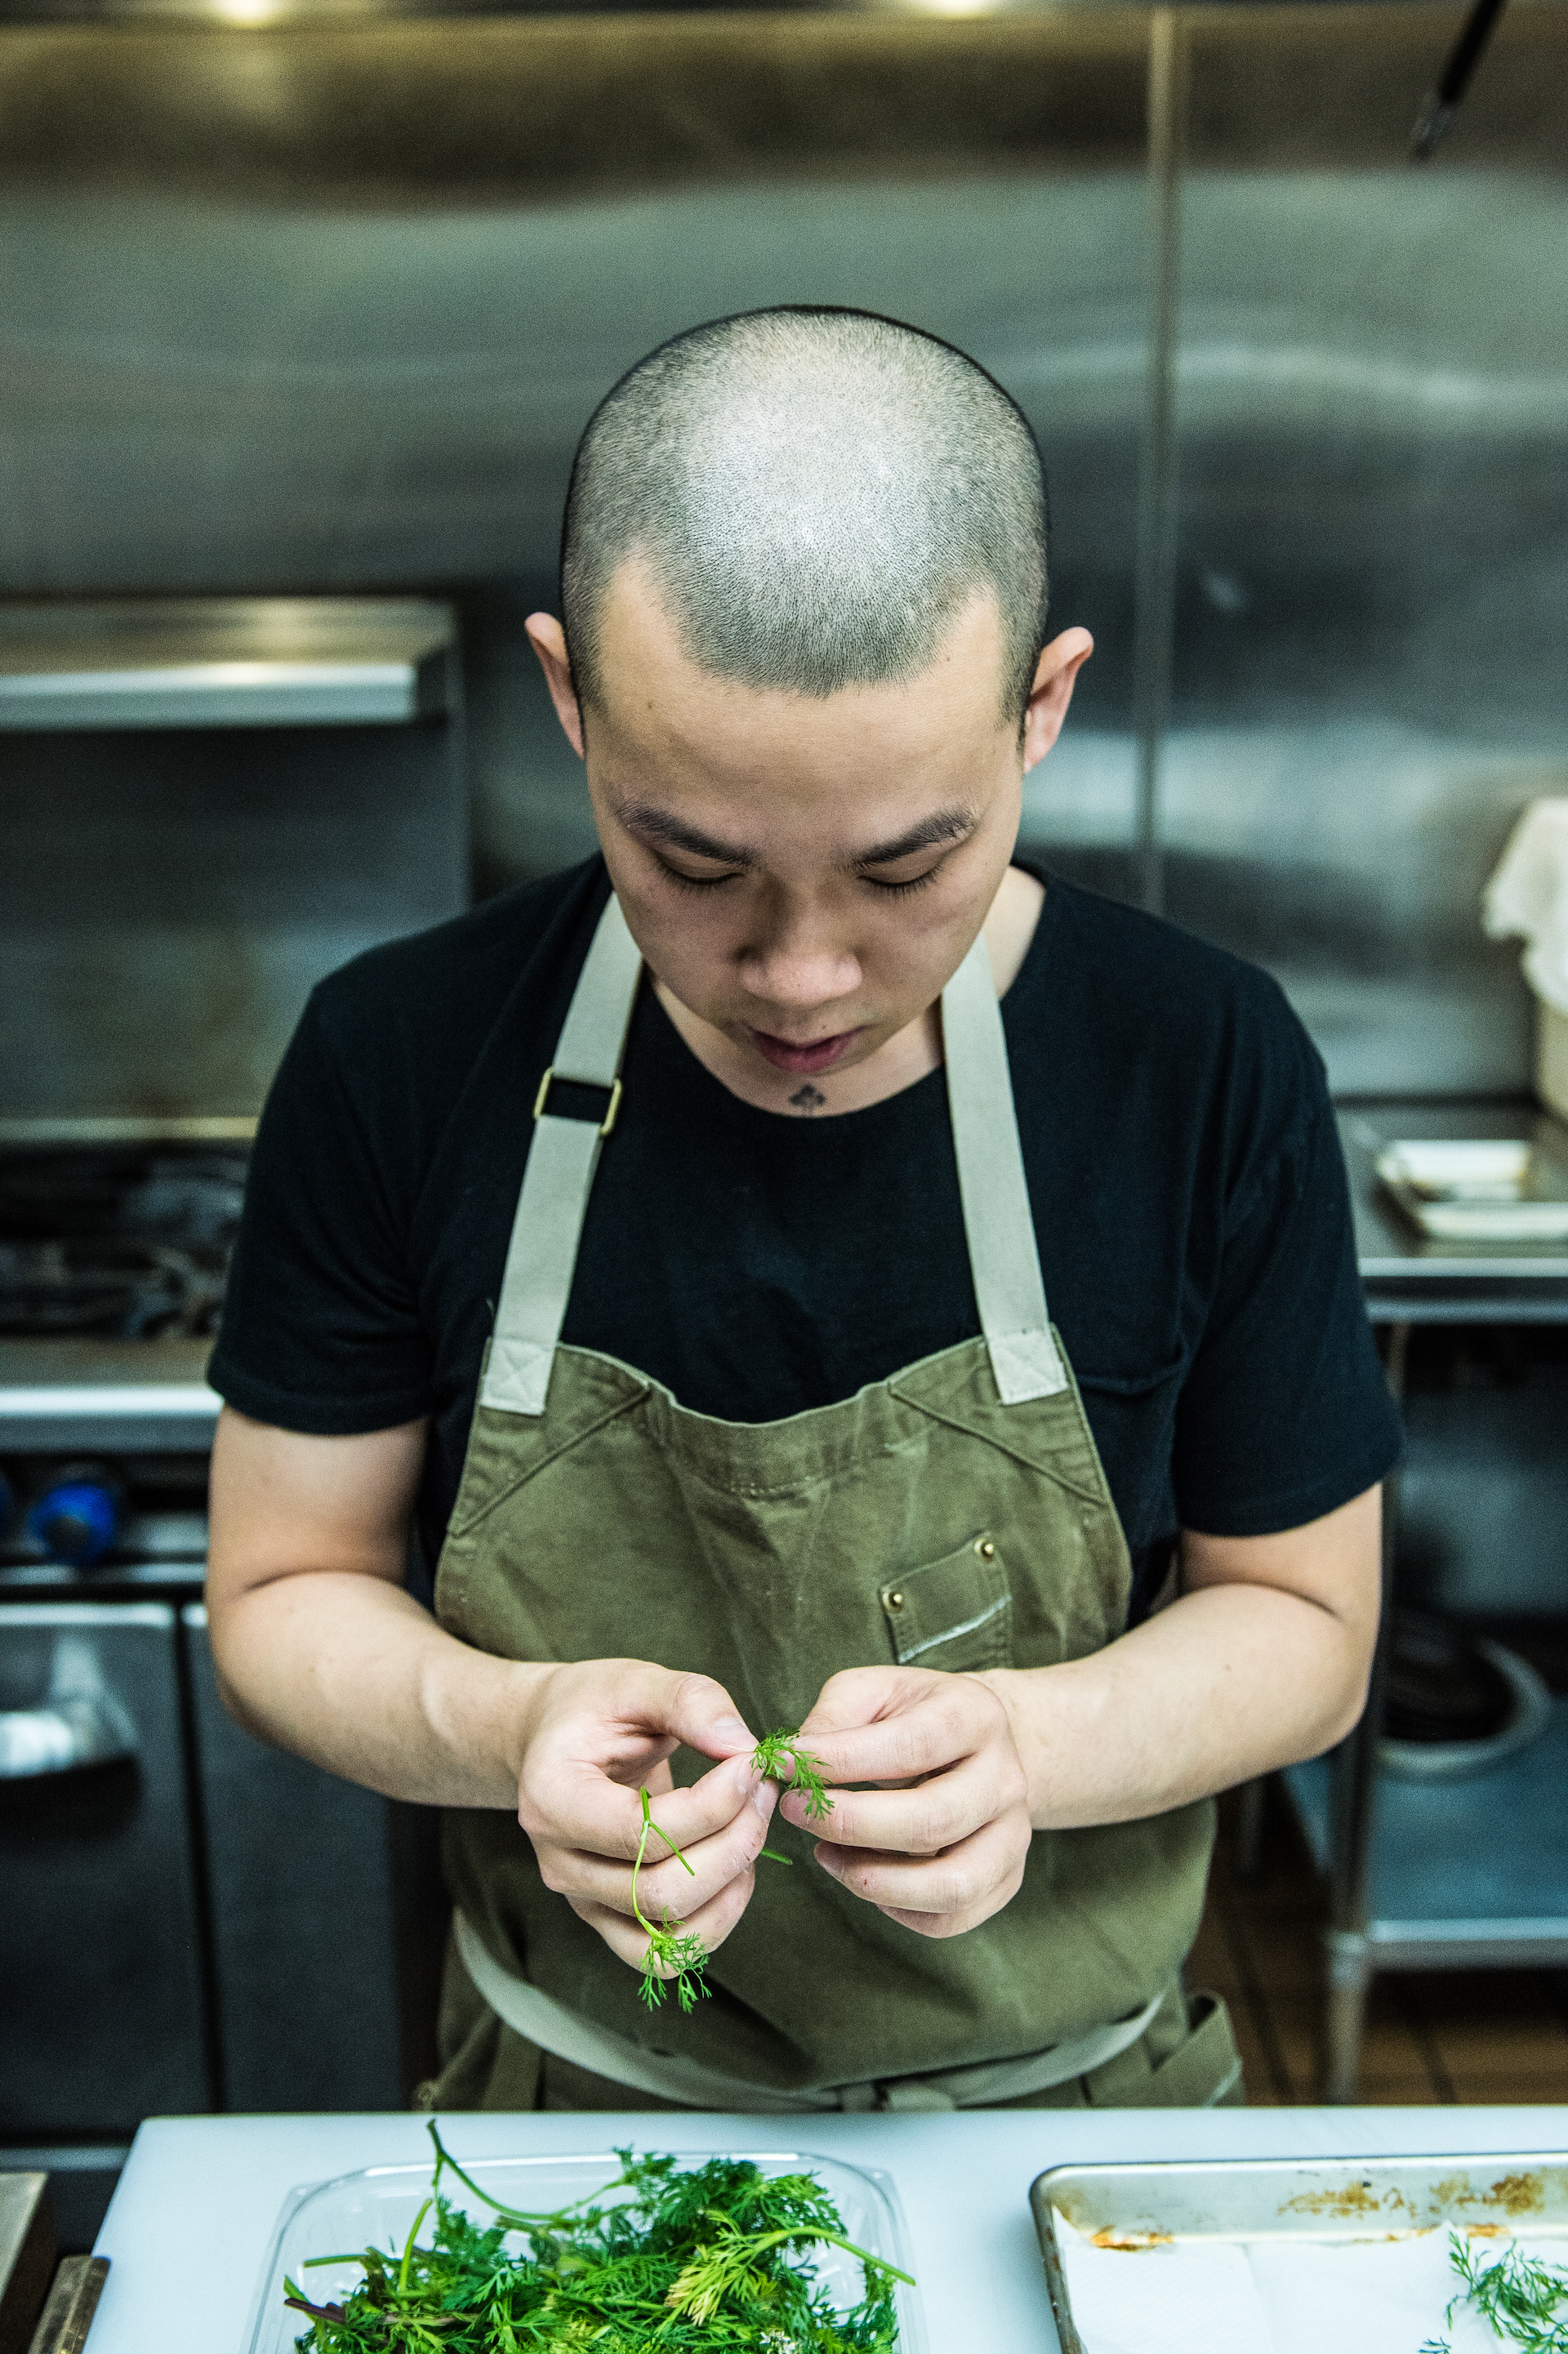 Chef Yao working with some micro greens.